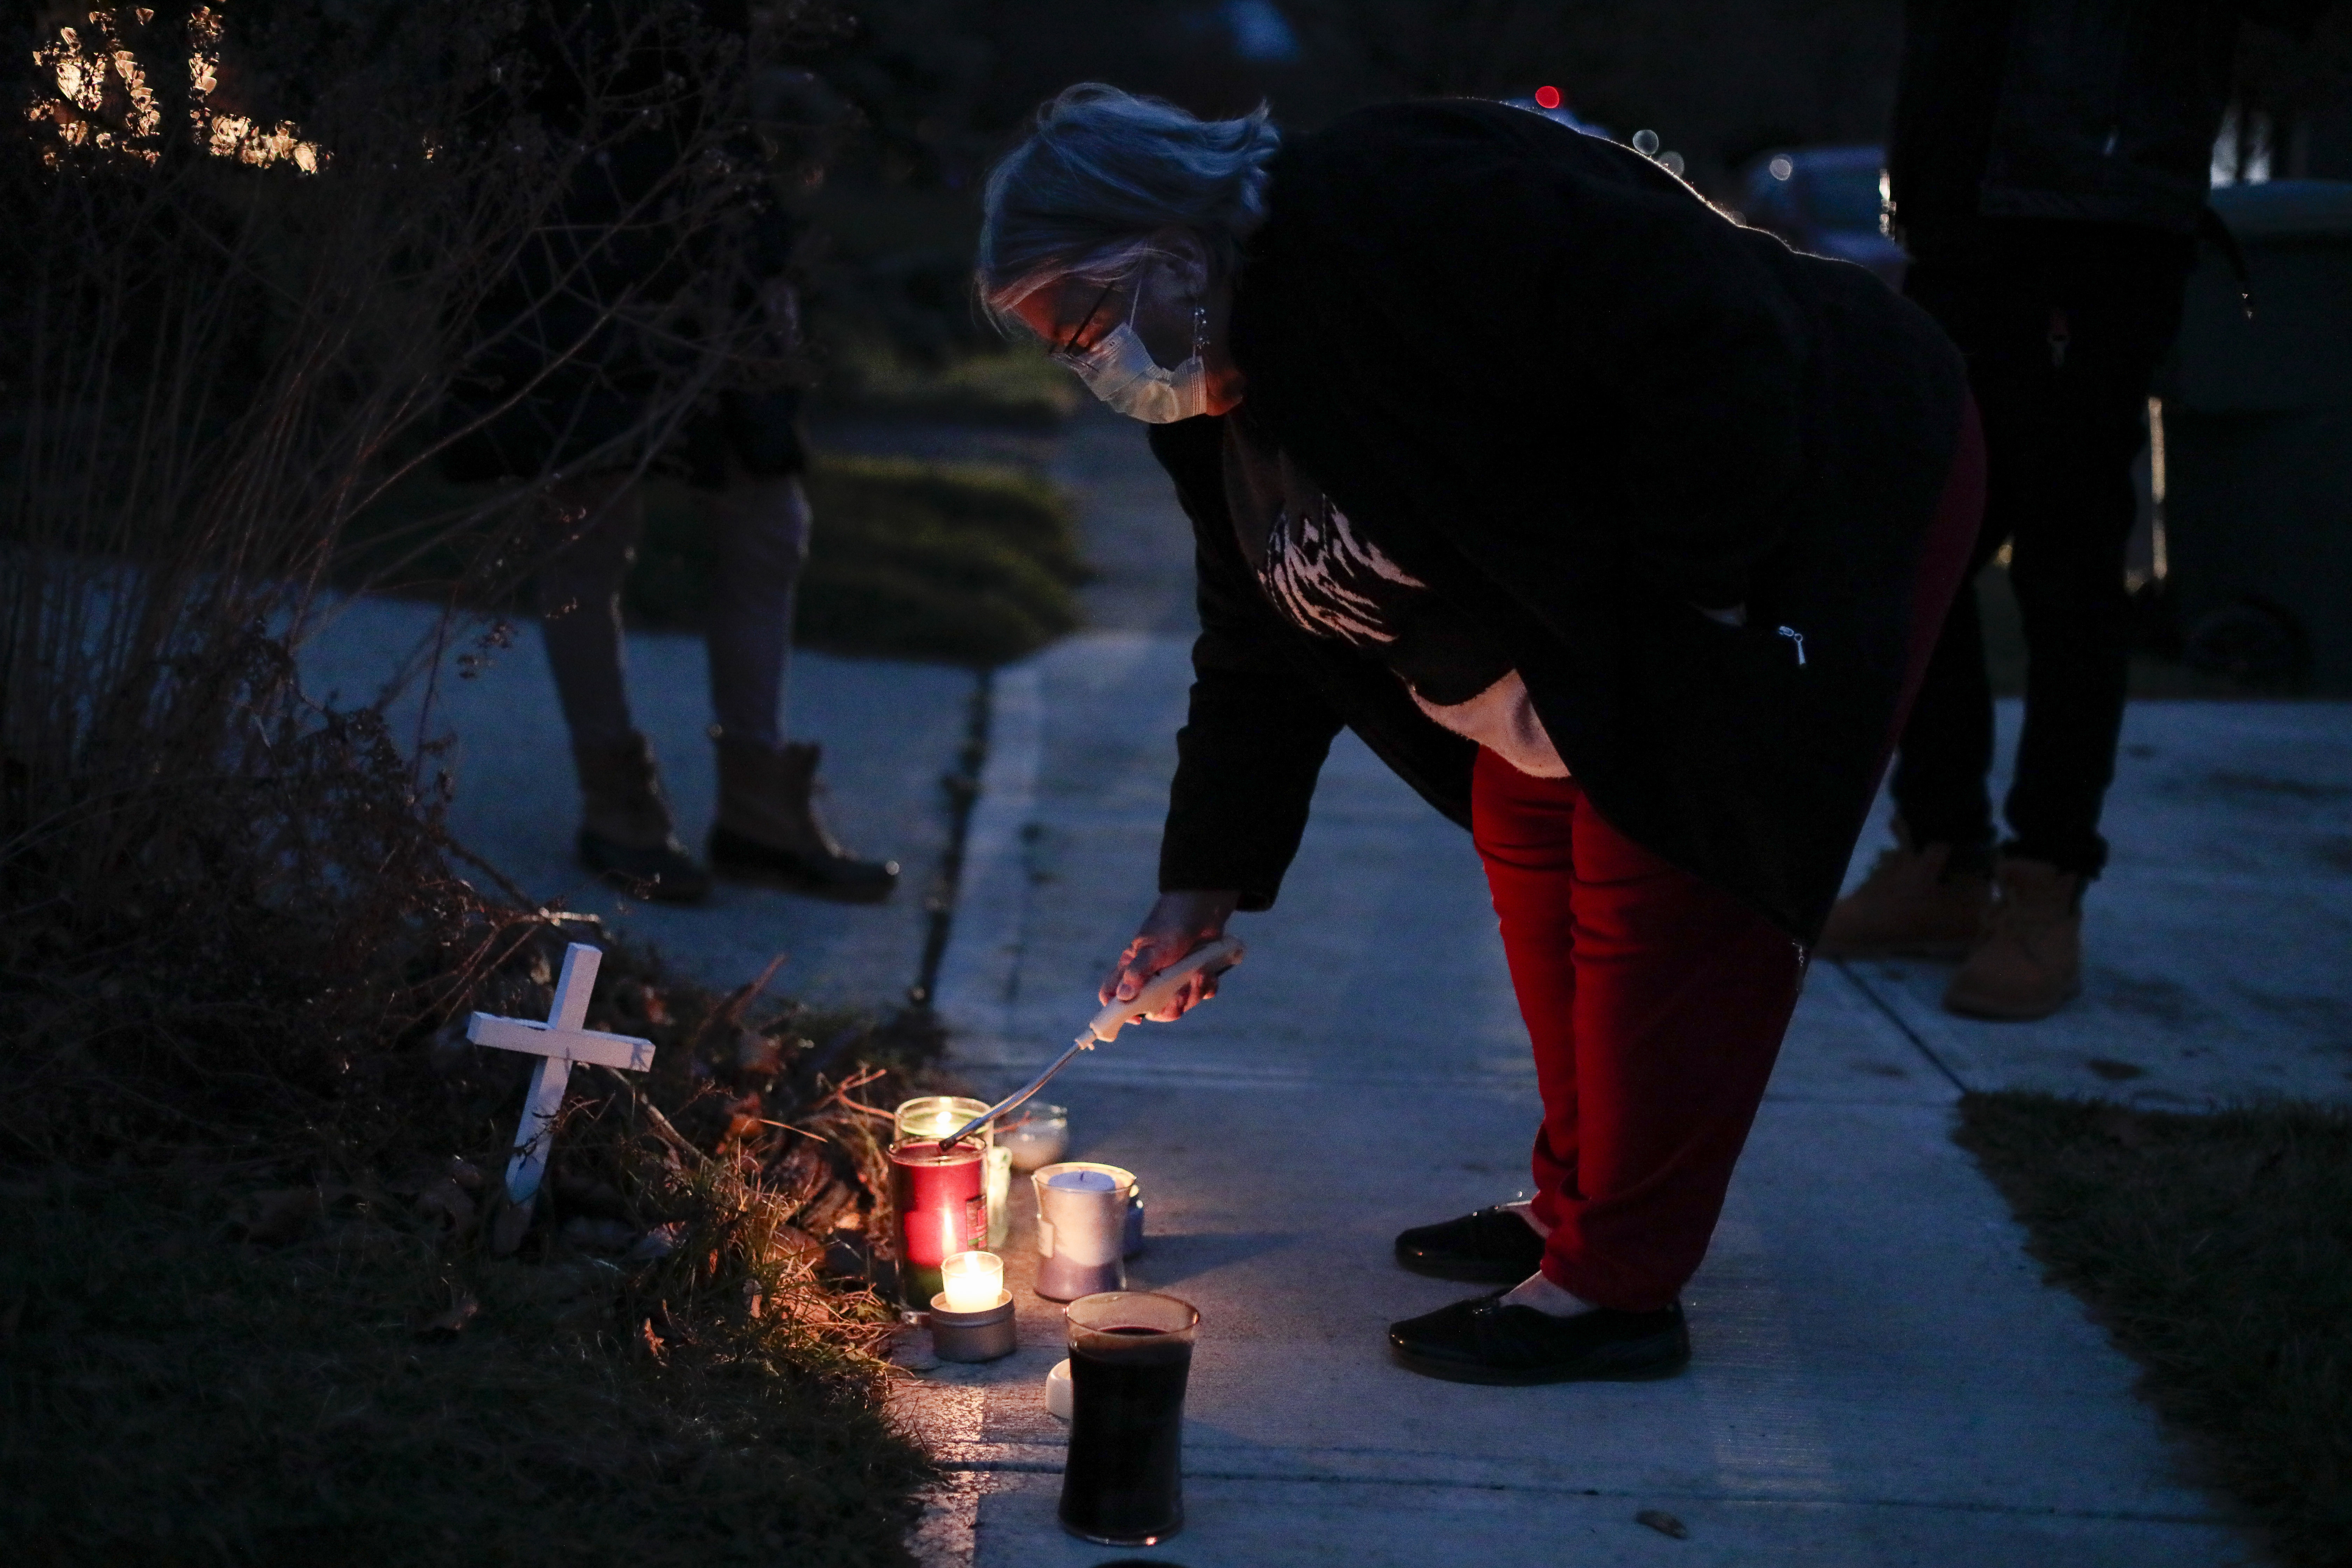 A neighbor lights a candle at a small memorial near the site of the fatal police shooting of Andre Hill on Wednesday, Dec. 23, 2020 on Oberlin Drive in Columbus, Ohio. Hill, 47, was shot and killed by Columbus Division of Police officer Adam Coy after responding to a suspicious vehicle call around 1:30 a.m., on Tuesday, Dec. 22, 2020 in the 1000 block of Oberlin Drive. Body camera footage released Wednesday shows Andre Hill, a 47-year-old Black man, emerging from a garage and holding up a cellphone in his left hand seconds before he is fatally shot by a Columbus police officer.